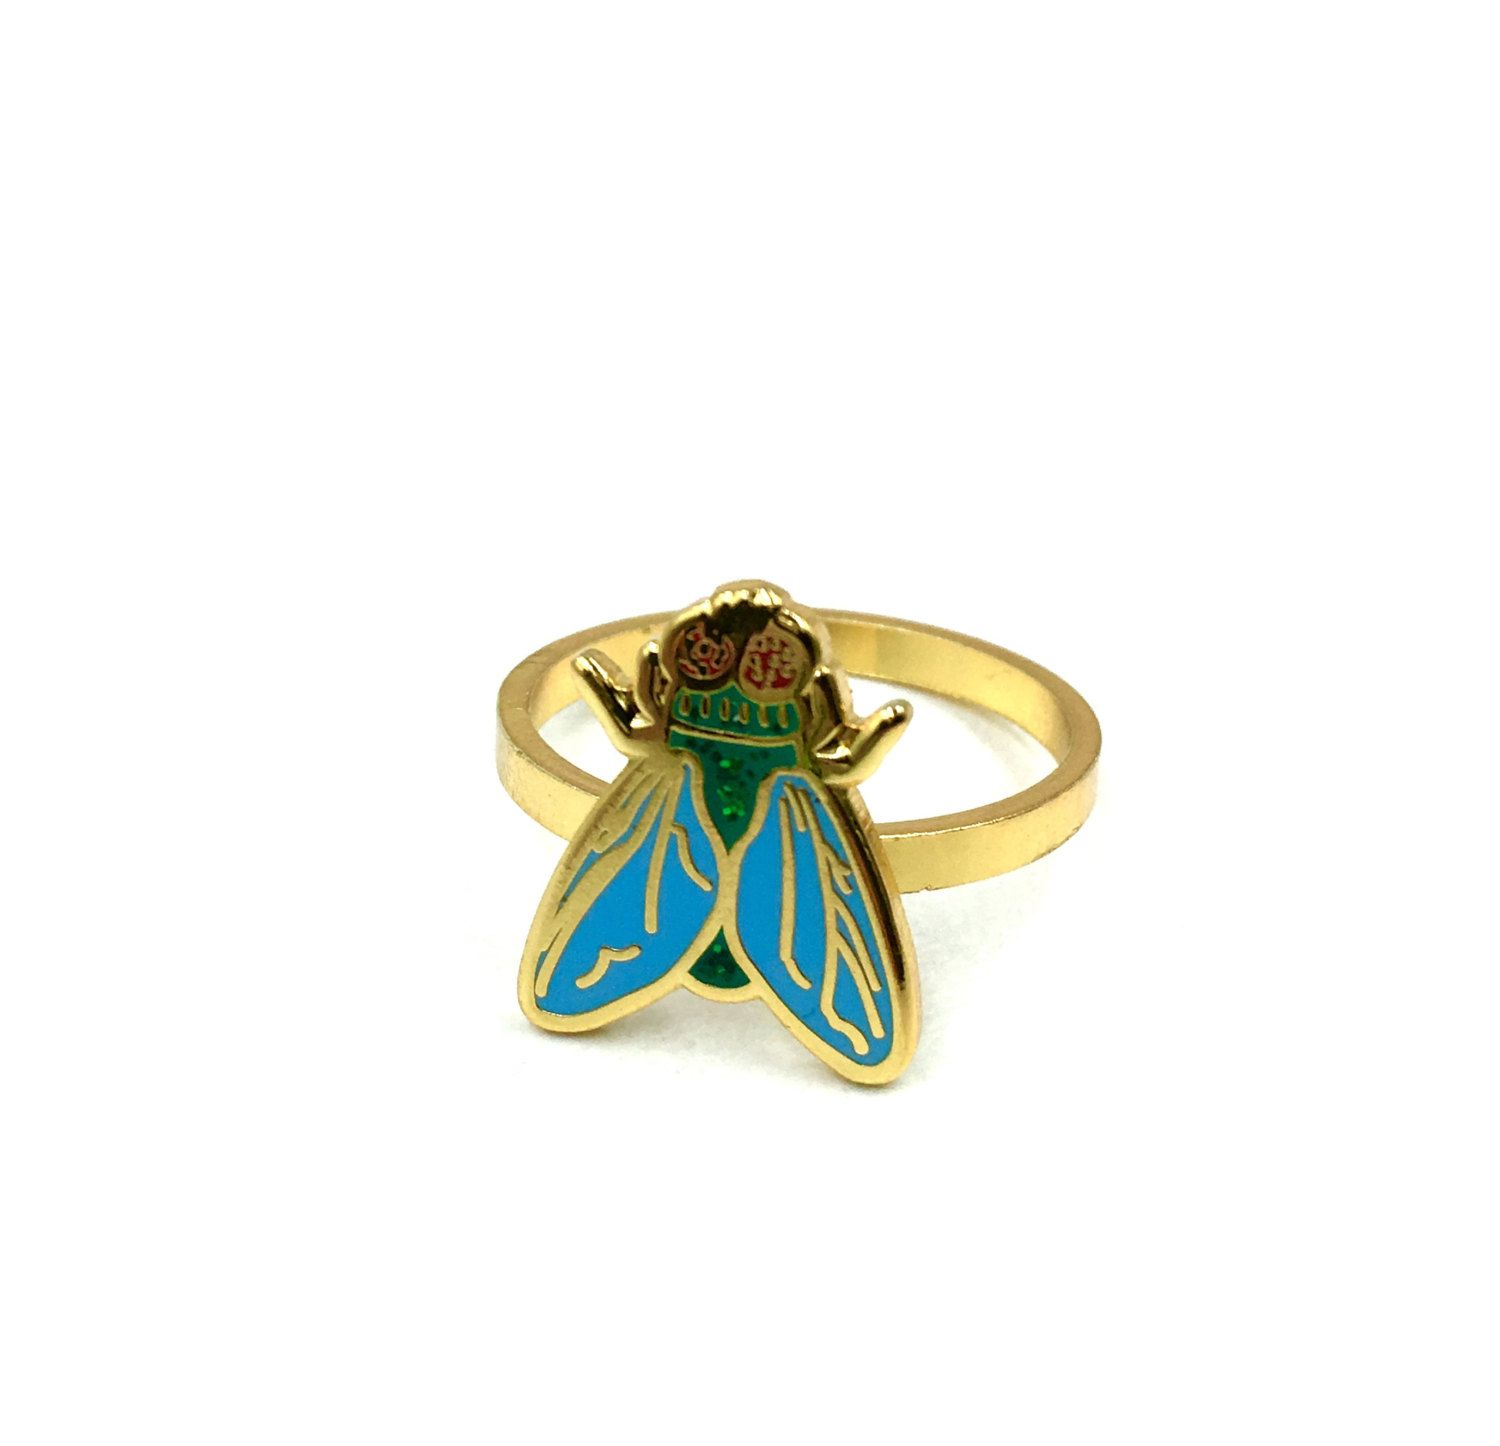 My+Favorite+Pin+is+now+a+ring!  ONLY+COMES+IN+SIZE+7  -size+7+(17.3+mm+wide+in+diameter)+which+will+fit+most+women's+middle+finger+or+could+be+worn+as+a+pinky+ring+for+men!  Comes+packaged+in+a+cloth+jewelry+bag